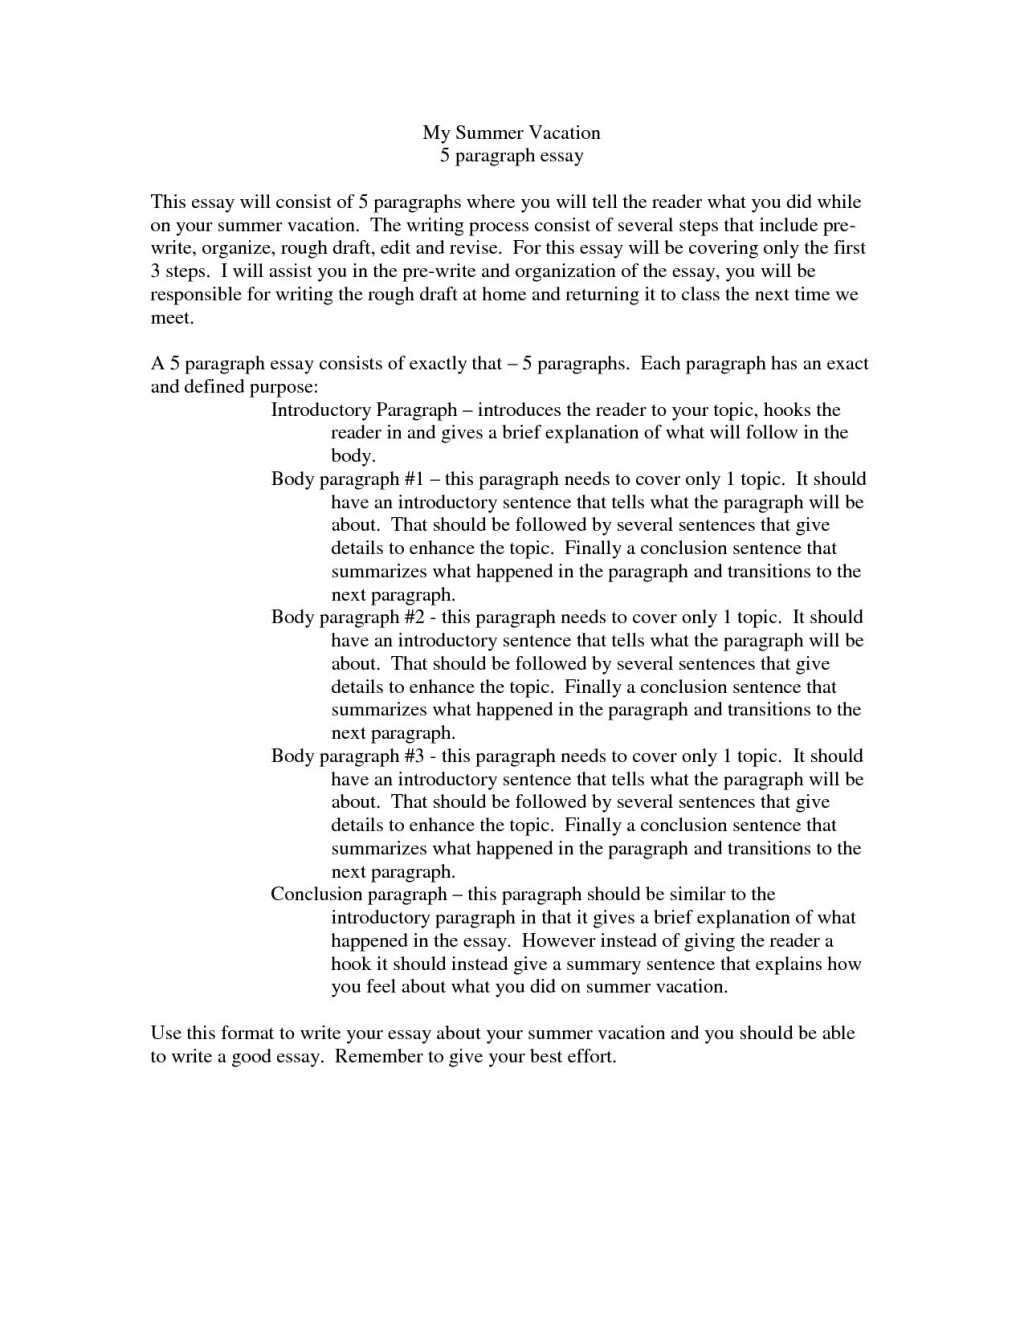 008 Help Me Write An Essay For Free College Essays Application L Phenomenal On Freedom Large